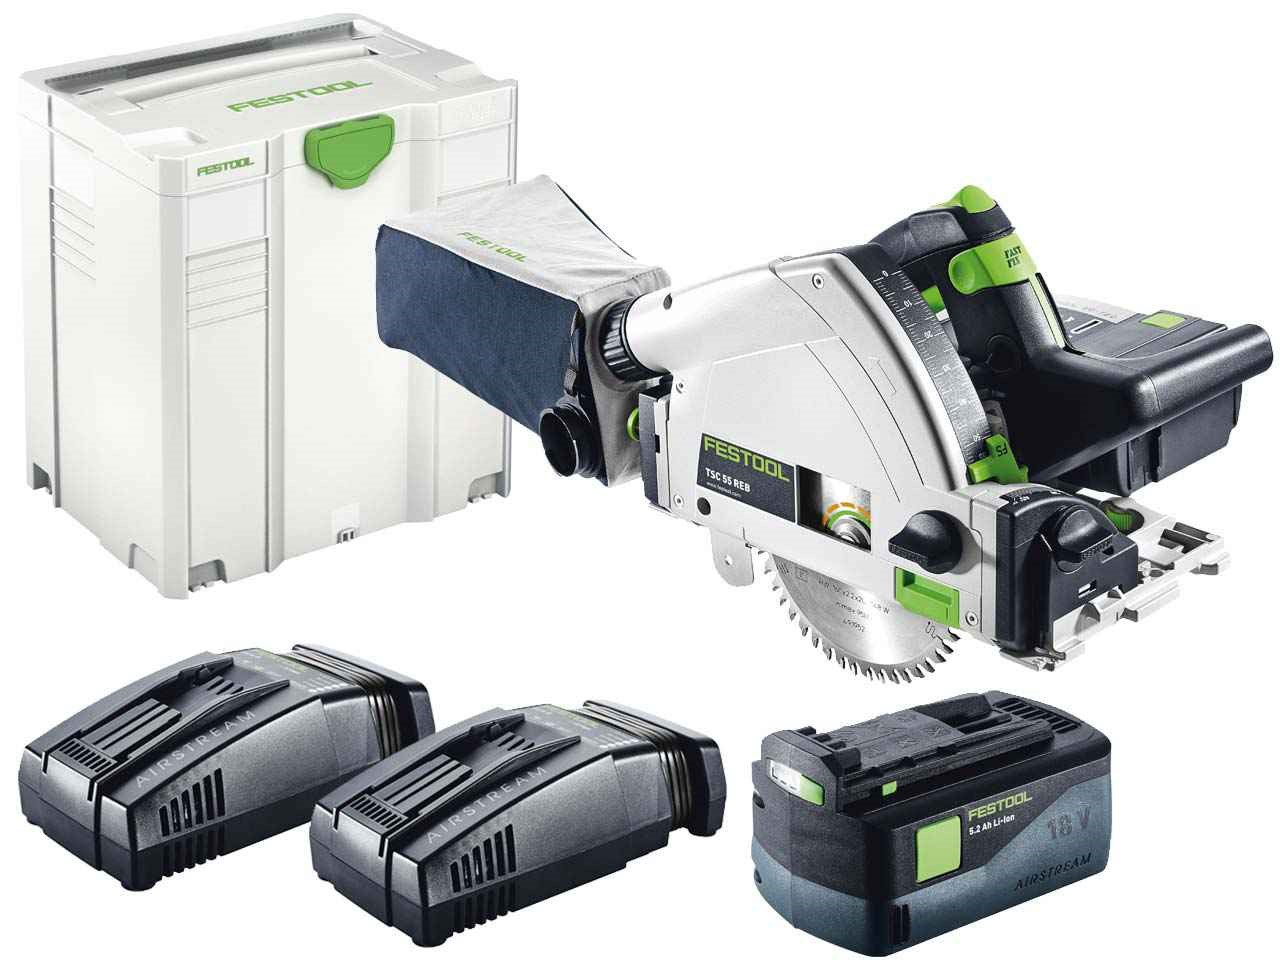 festool tsc 55 li 5 2 reb plus xl sca gb 18v cordless plunge cut saw in systainer 5. Black Bedroom Furniture Sets. Home Design Ideas